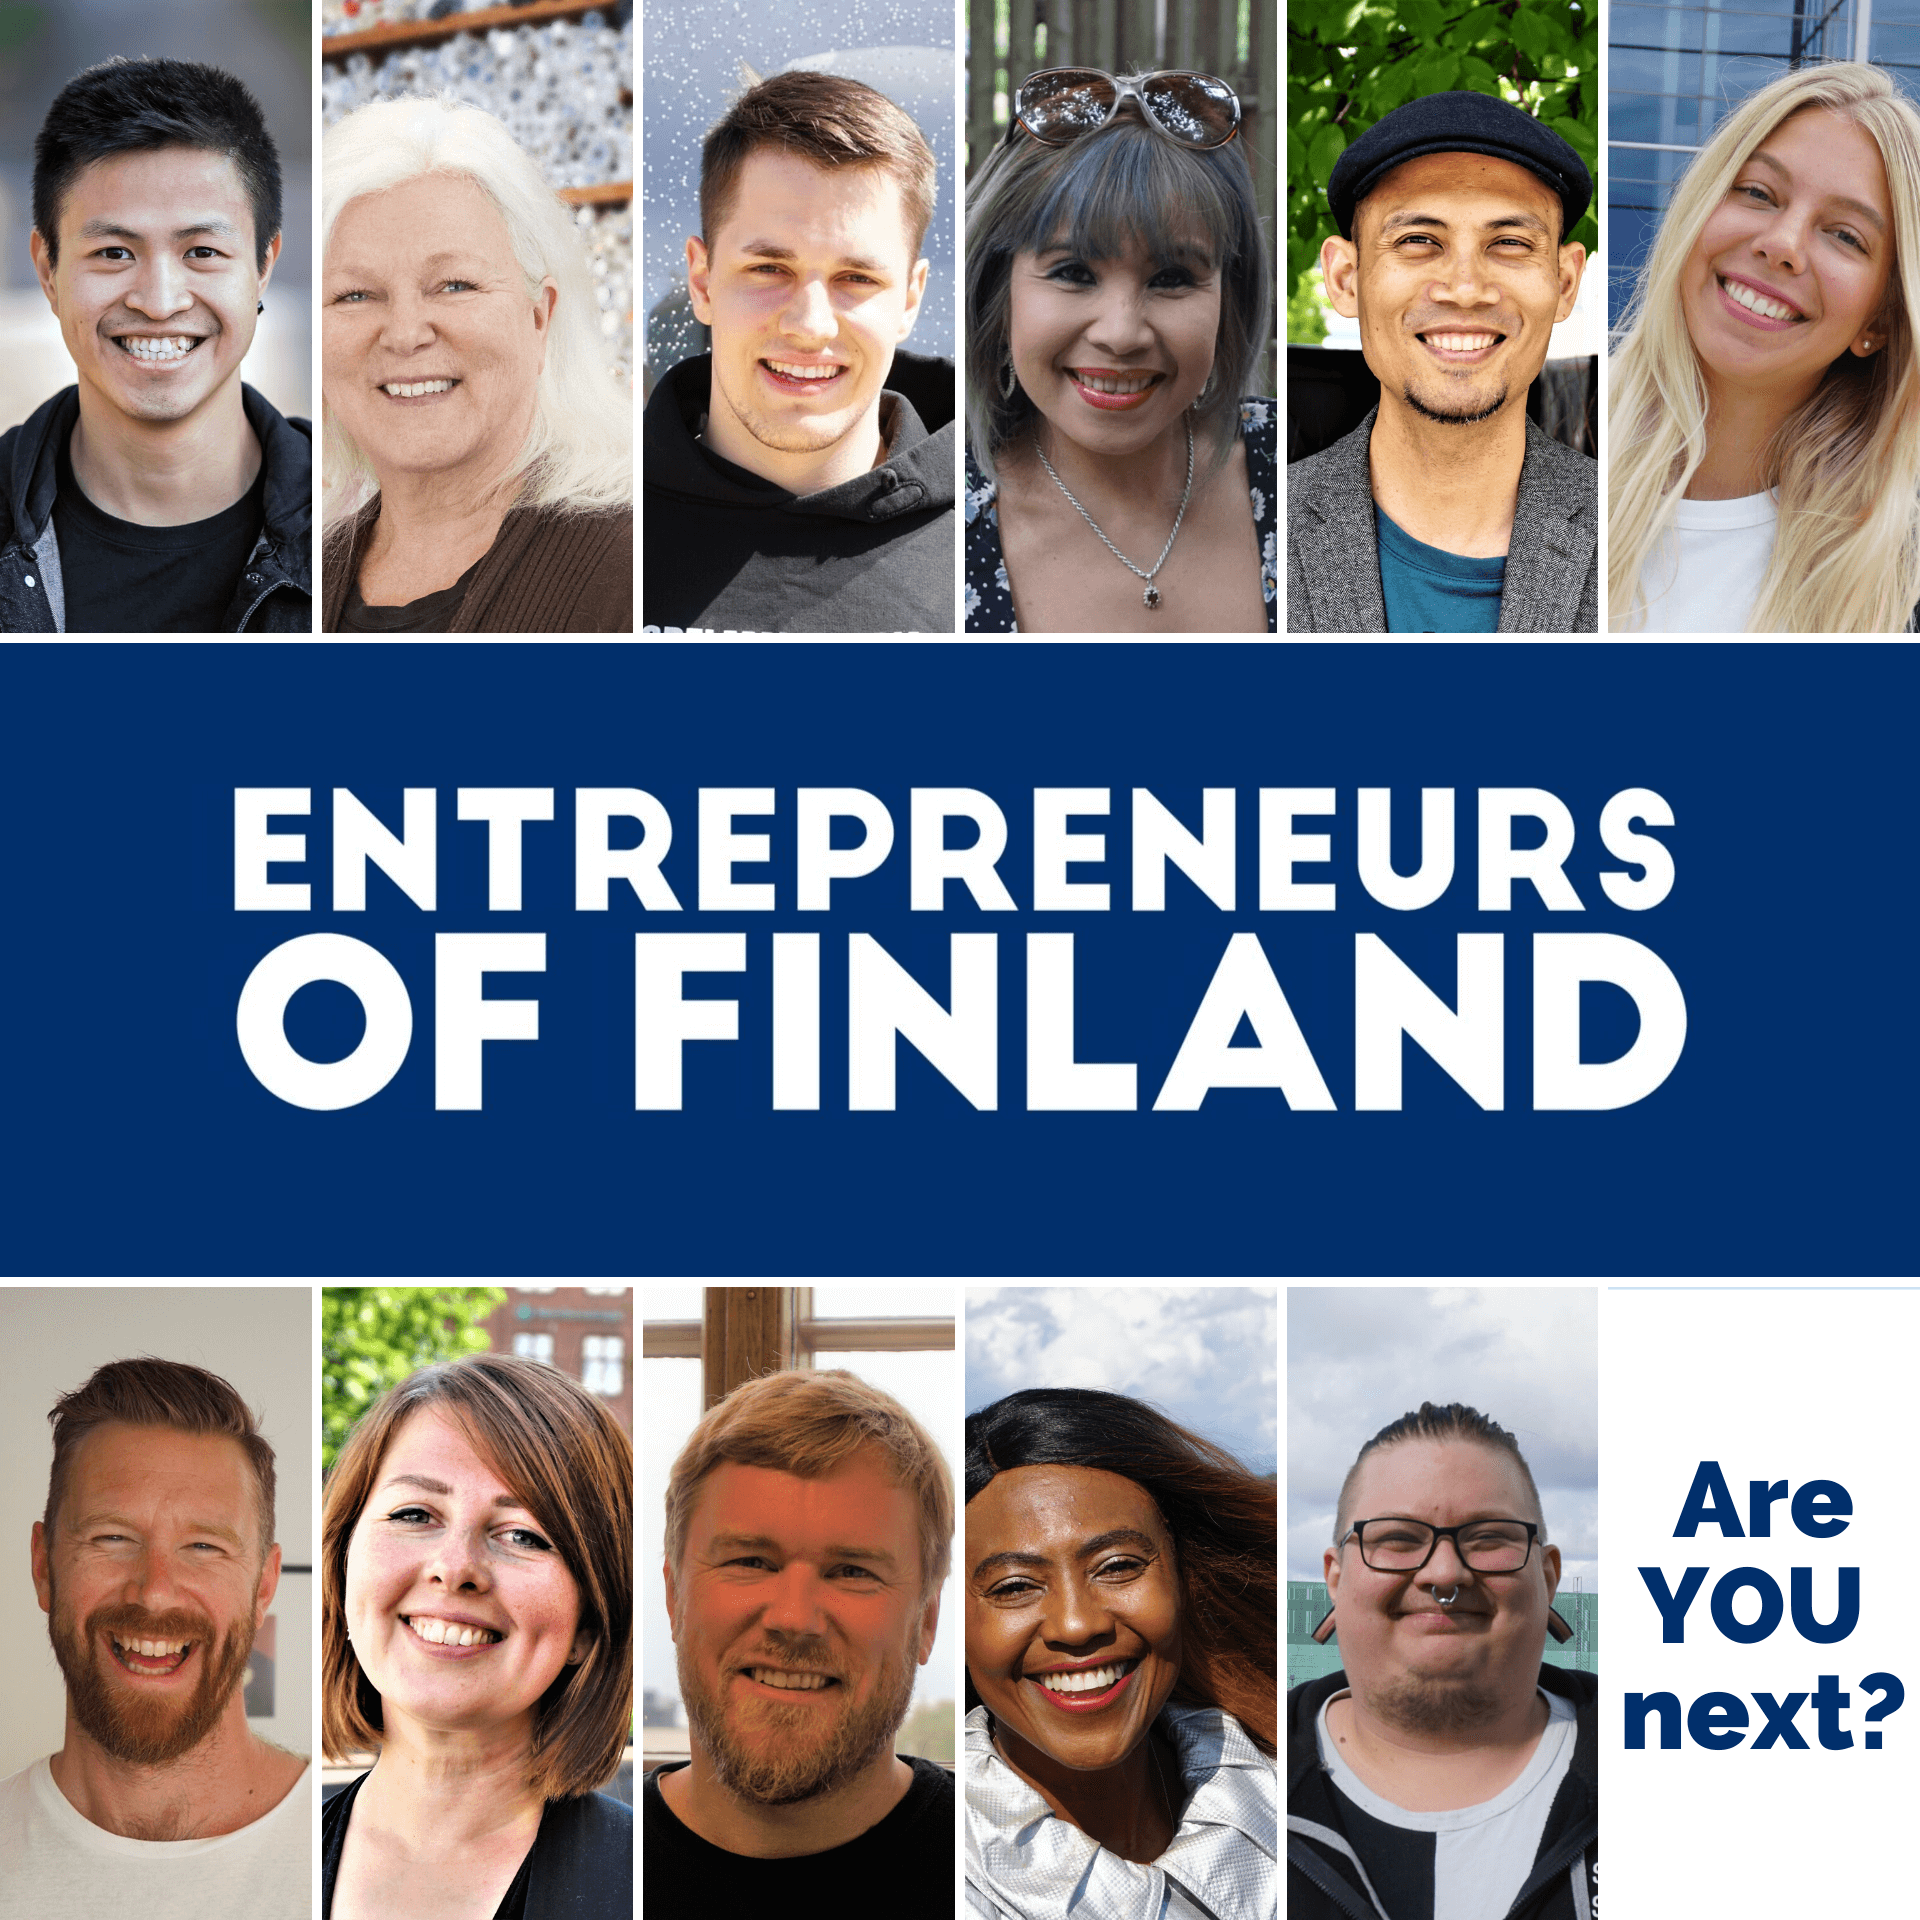 I want to share with you a project called Entrepreneurs Of Finland I have been working on in the past 3 months